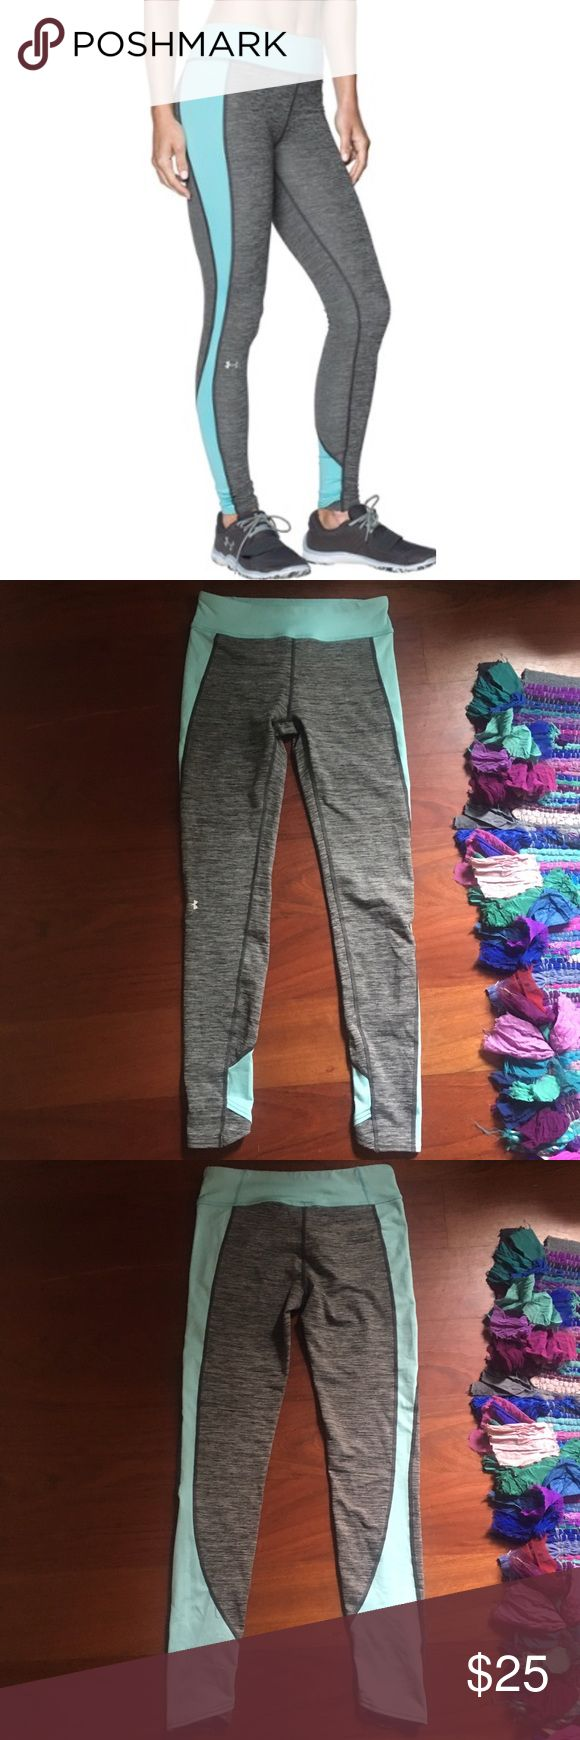 Under armour grey and teal leggings Under armour grey and teal leggings            Size small worn once are unfortunately too small for me! Under Armour Pants Leggings